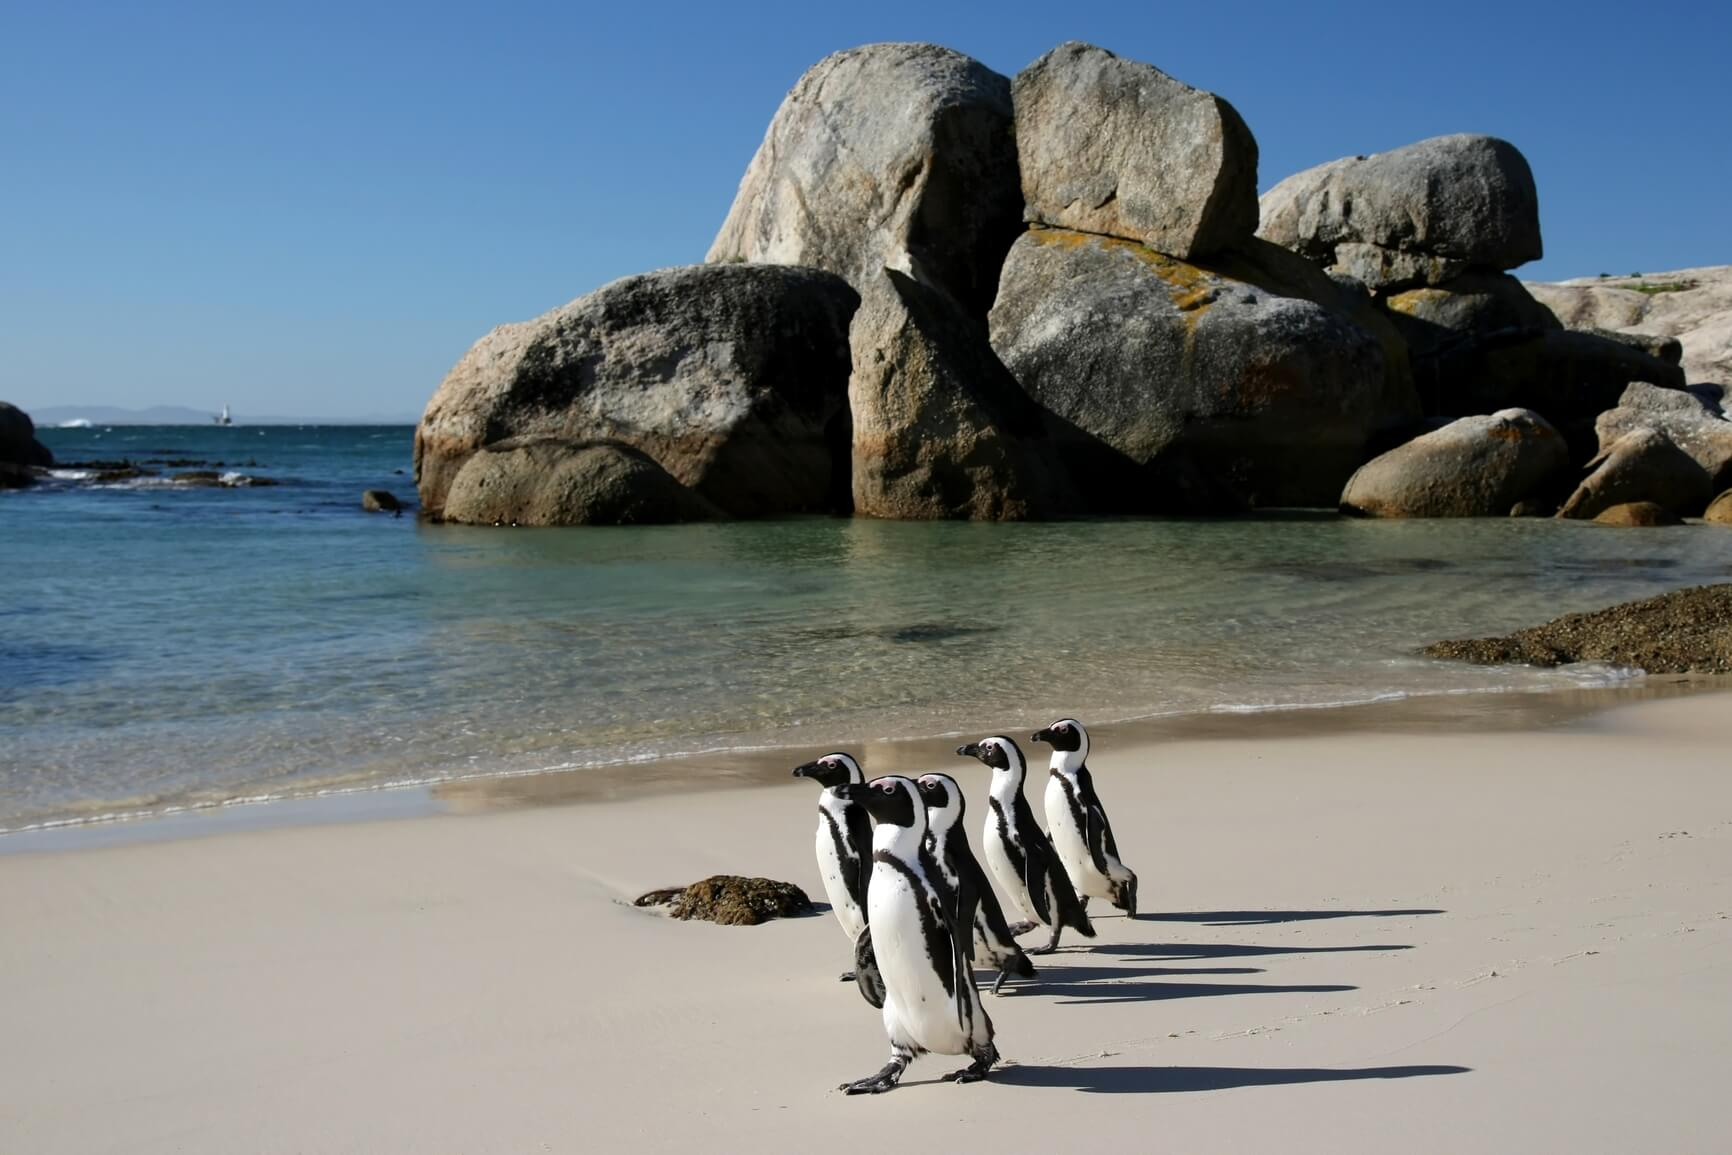 Prague, Czech Republic to Cape Town, South Africa for only €330 roundtrip (Jan-Mar dates)